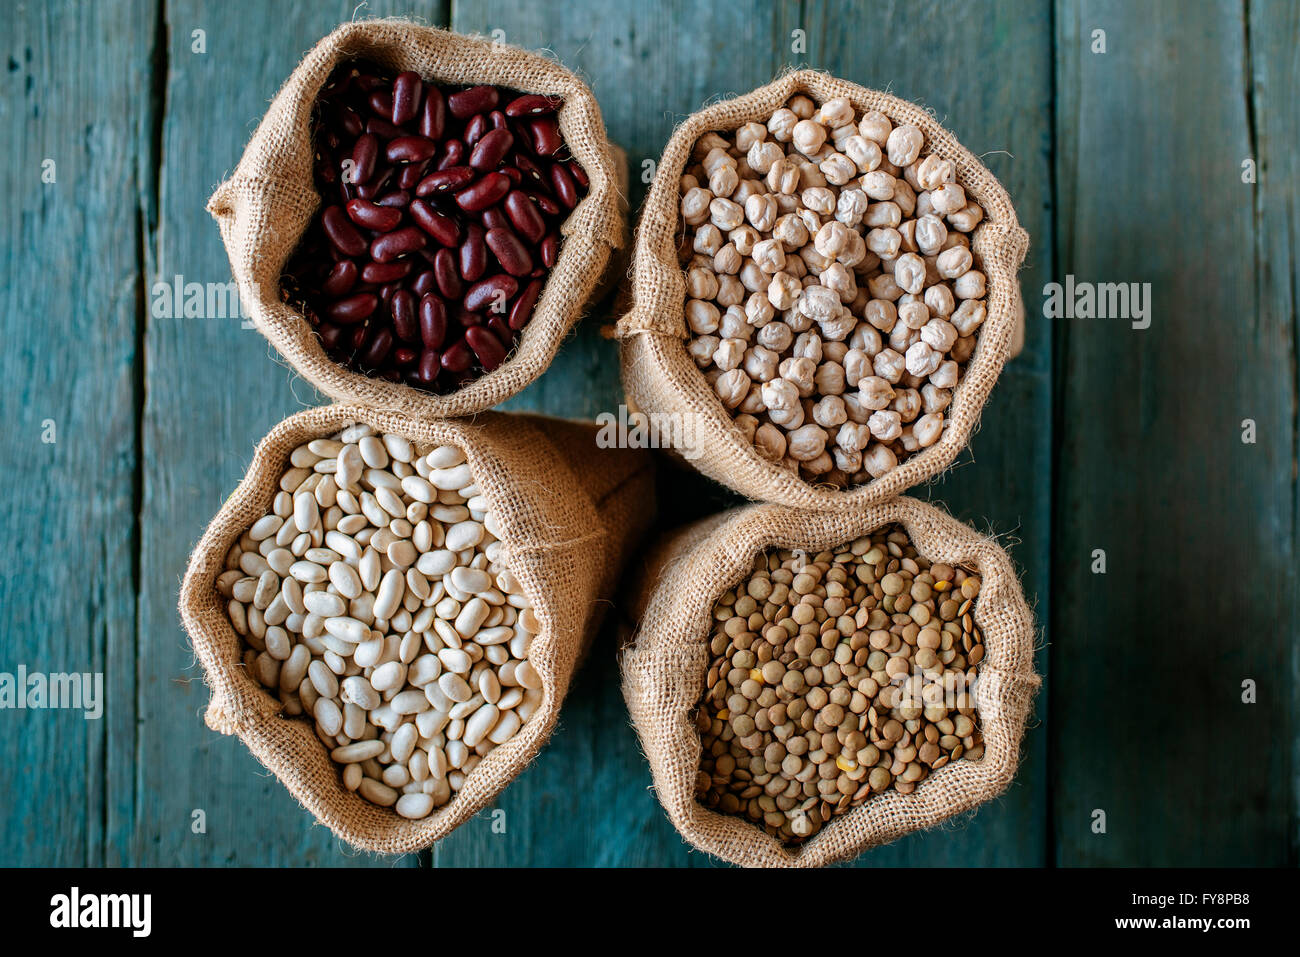 Four sacks of dried brown lentils, chickpeas and red and white beans on wood - Stock Image